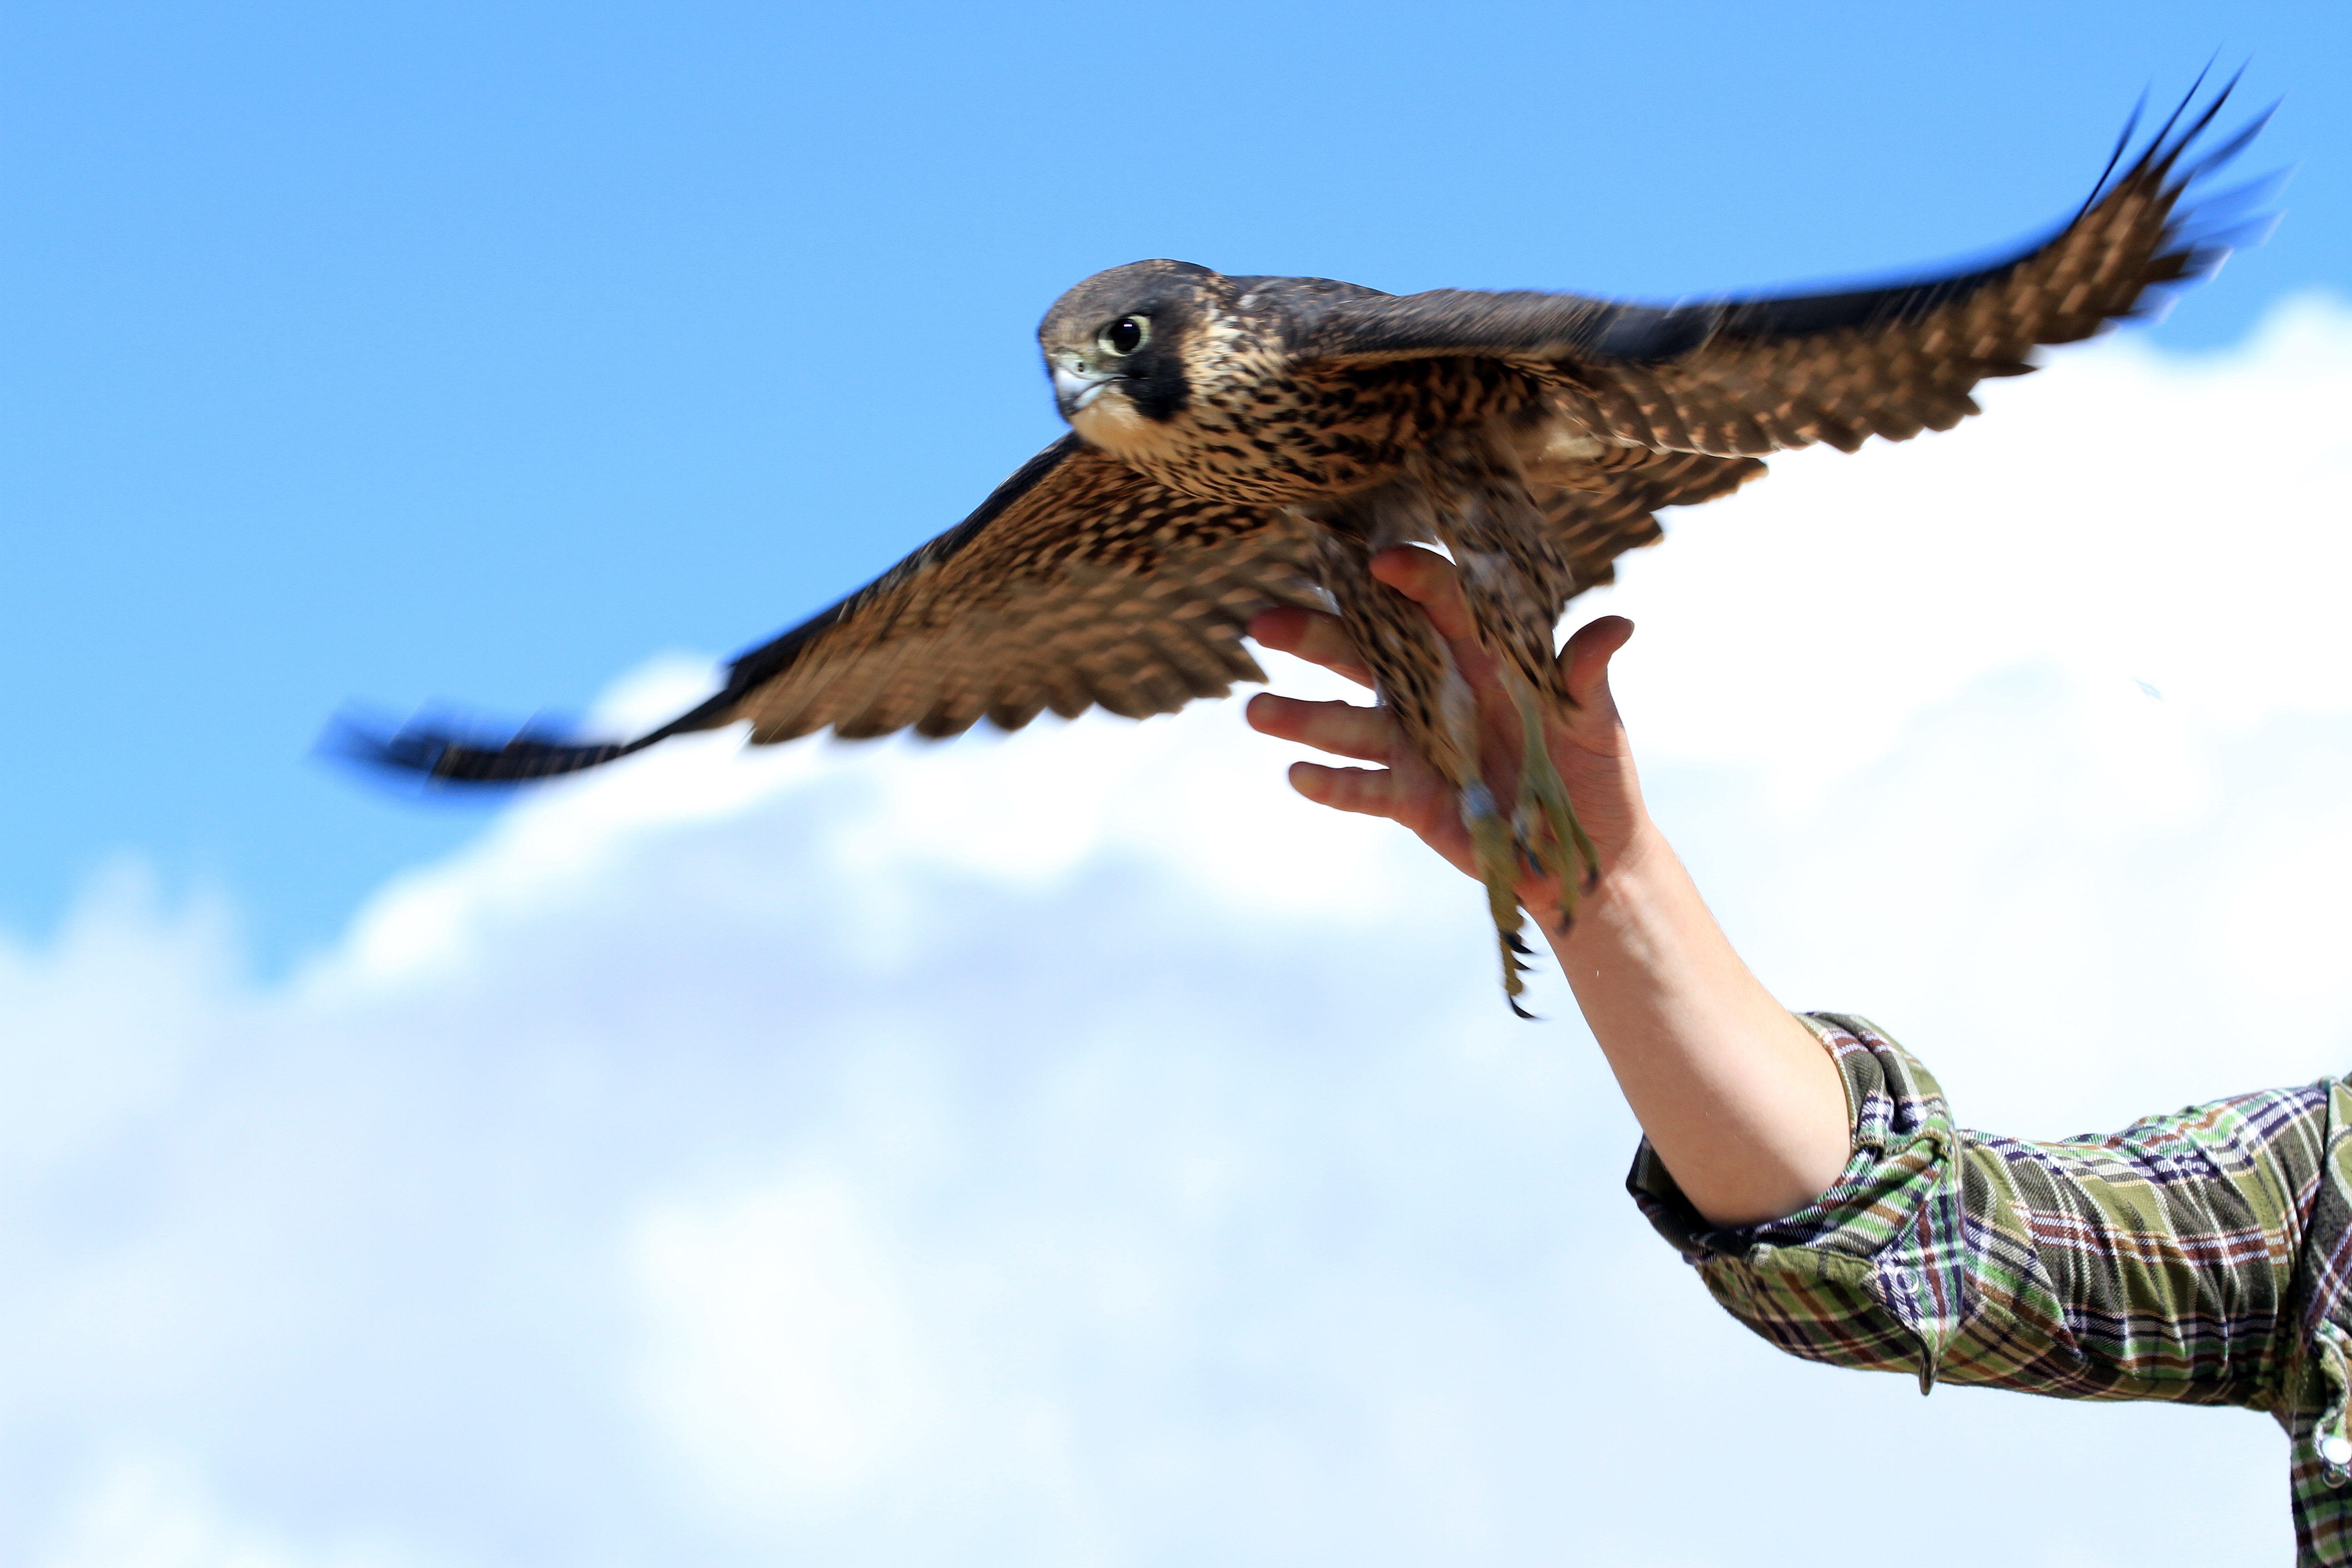 a biologists hand is seen held open to release a peregrine falcon. the falcon flies away with wings spread